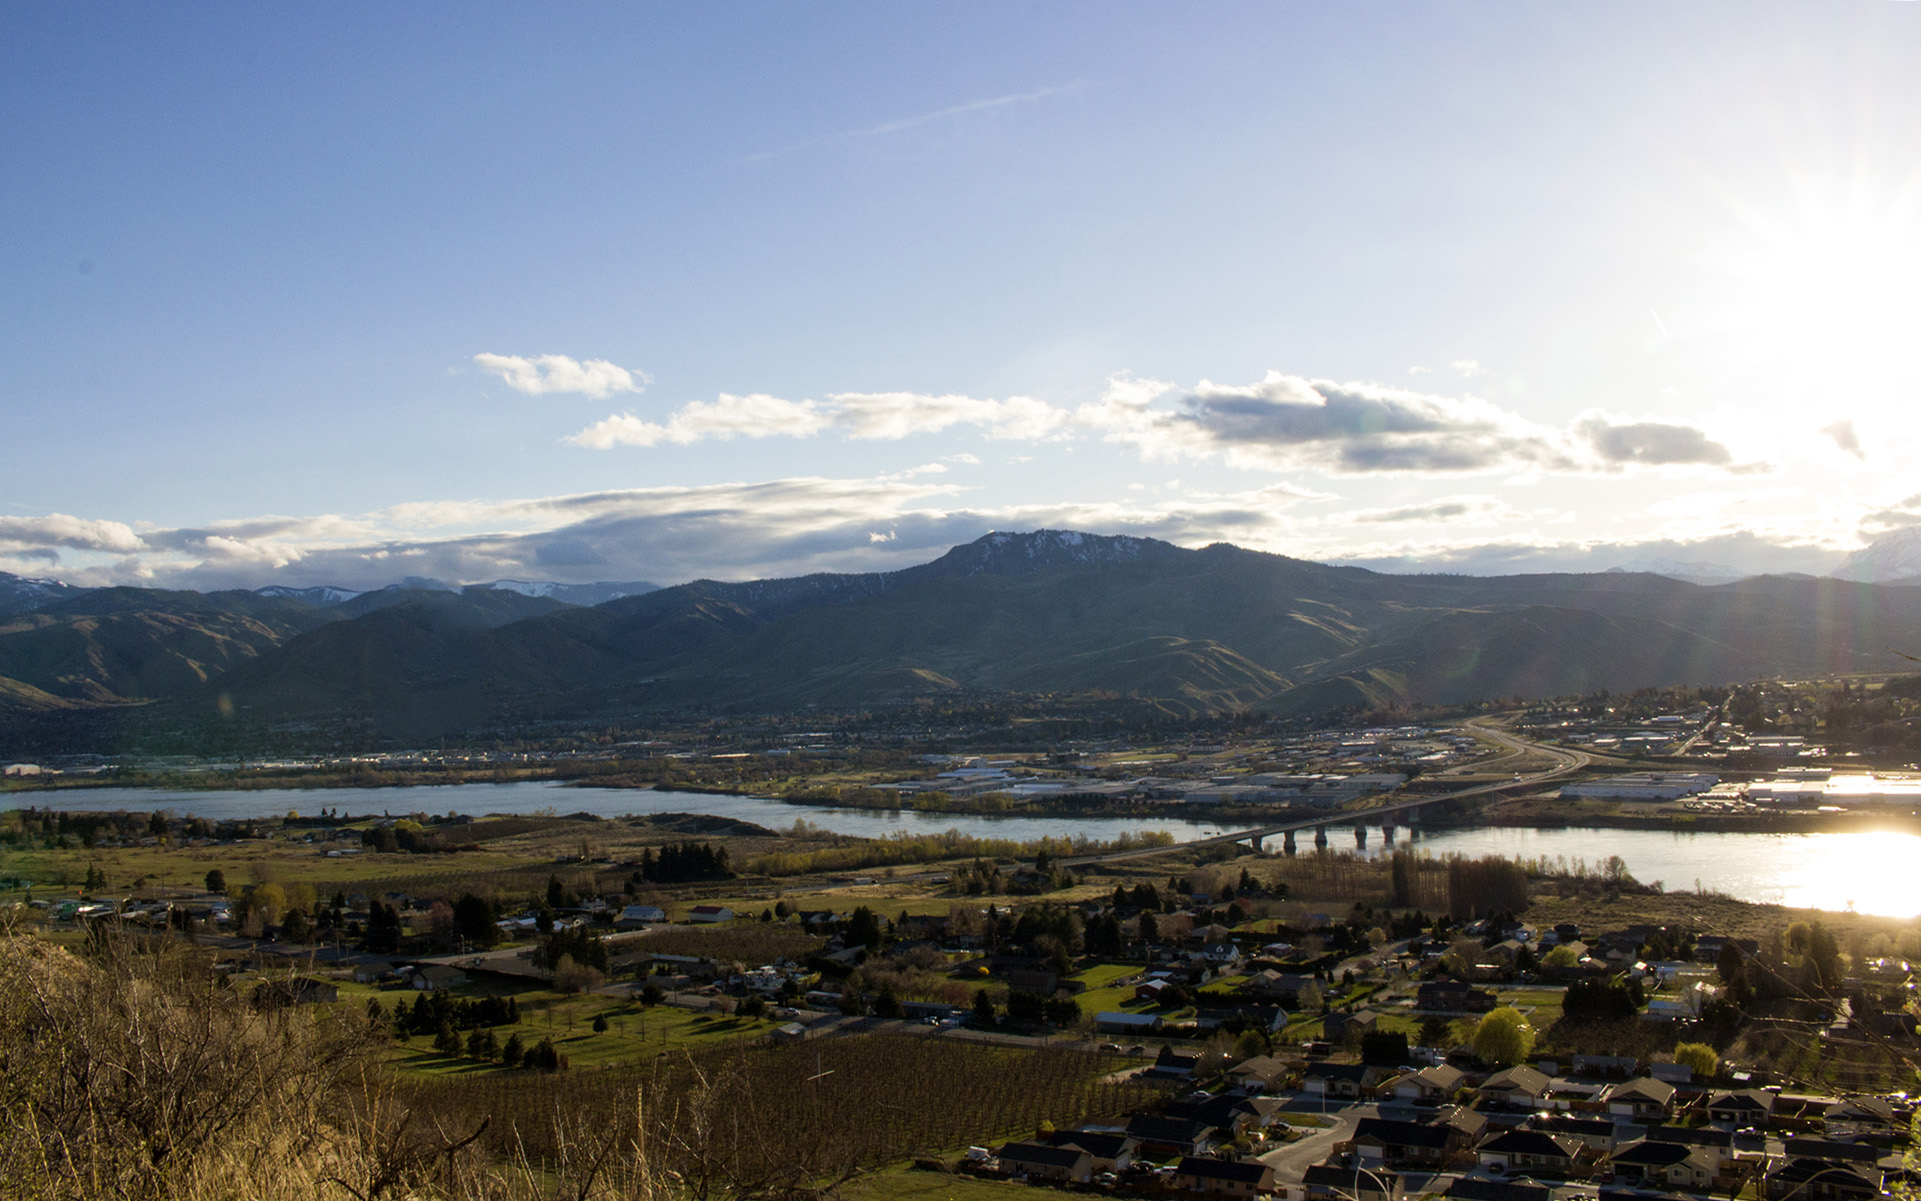 Wenatchee Valley in Chelan County, Washington.